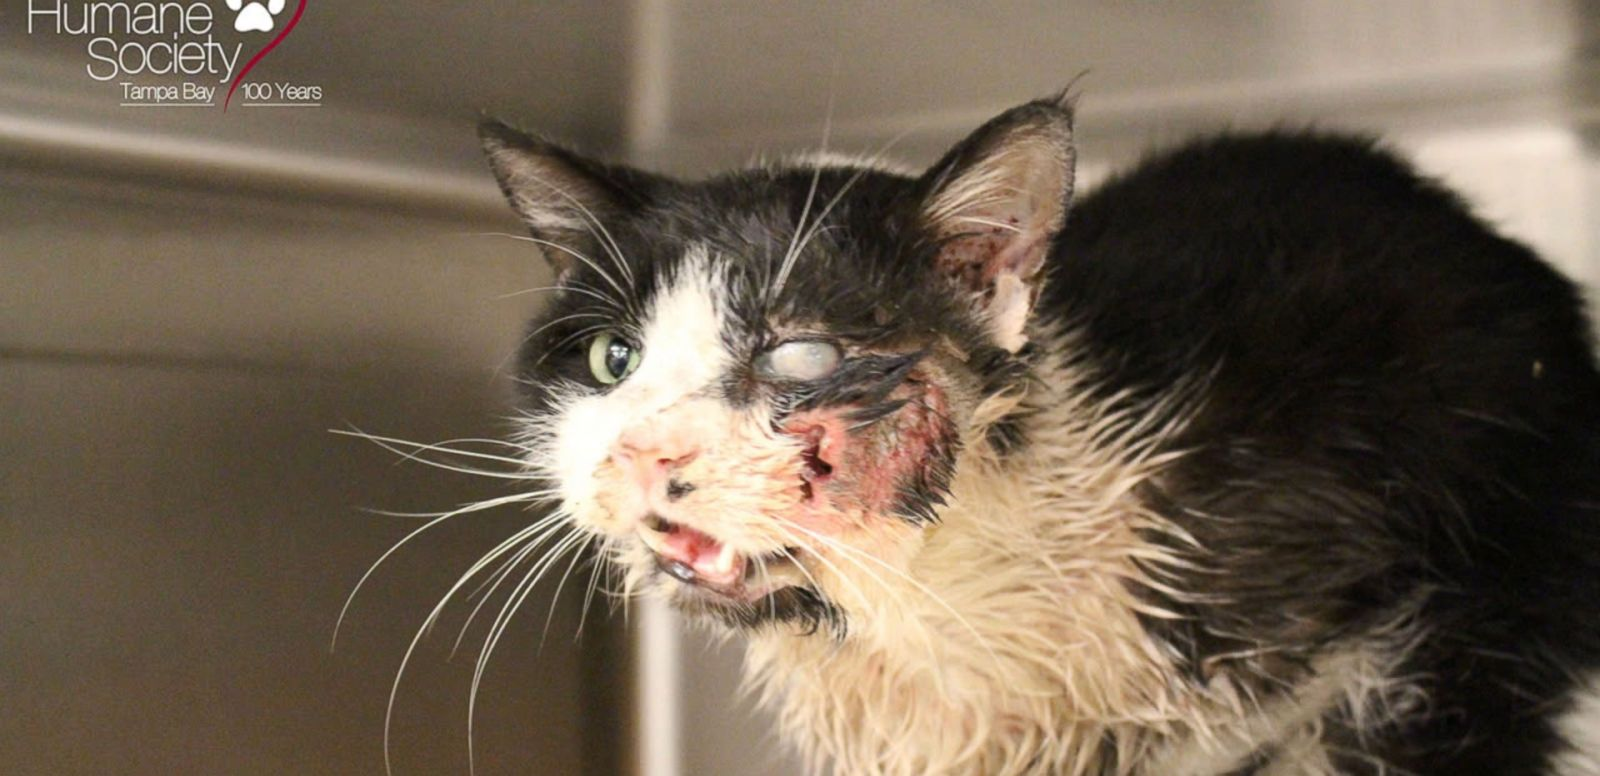 VIDEO: Bart, a cat in Tampa, was struck by a car and buried before reappearing in a neighbor's yard.